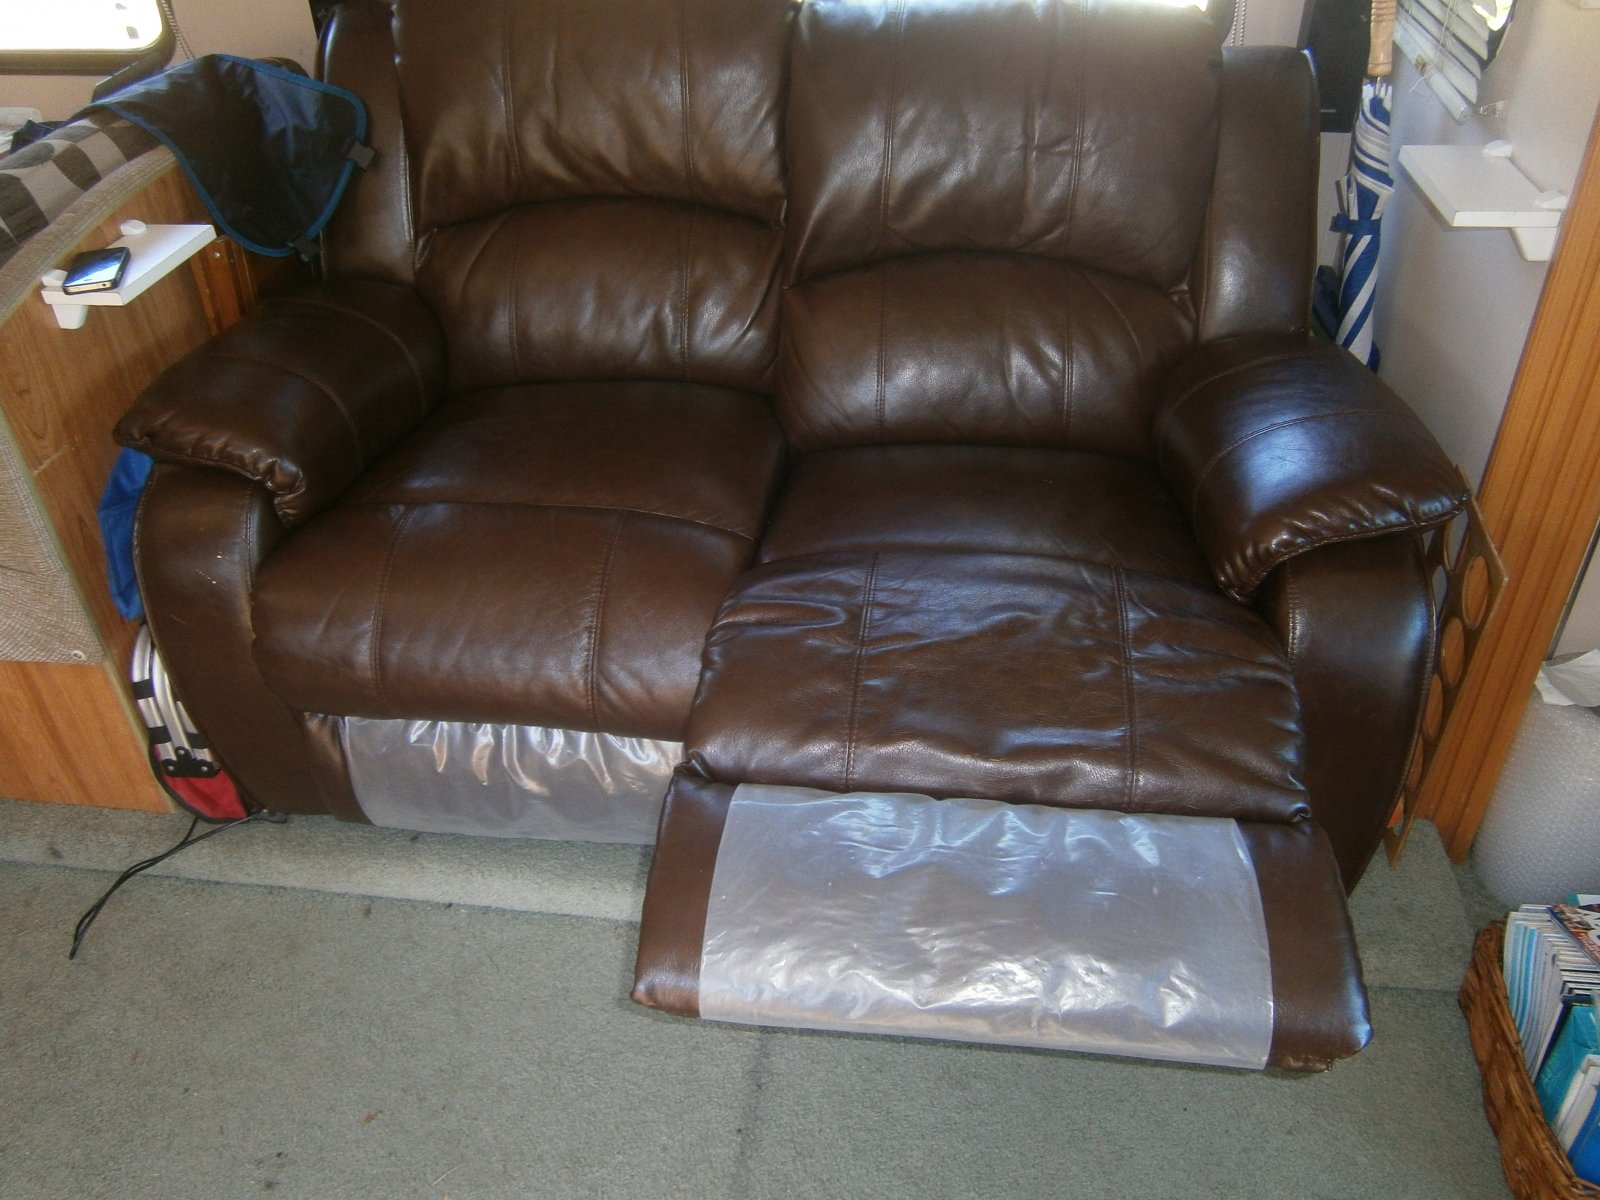 Click image for larger version  Name:Couch.jpg Views:87 Size:288.3 KB ID:55805